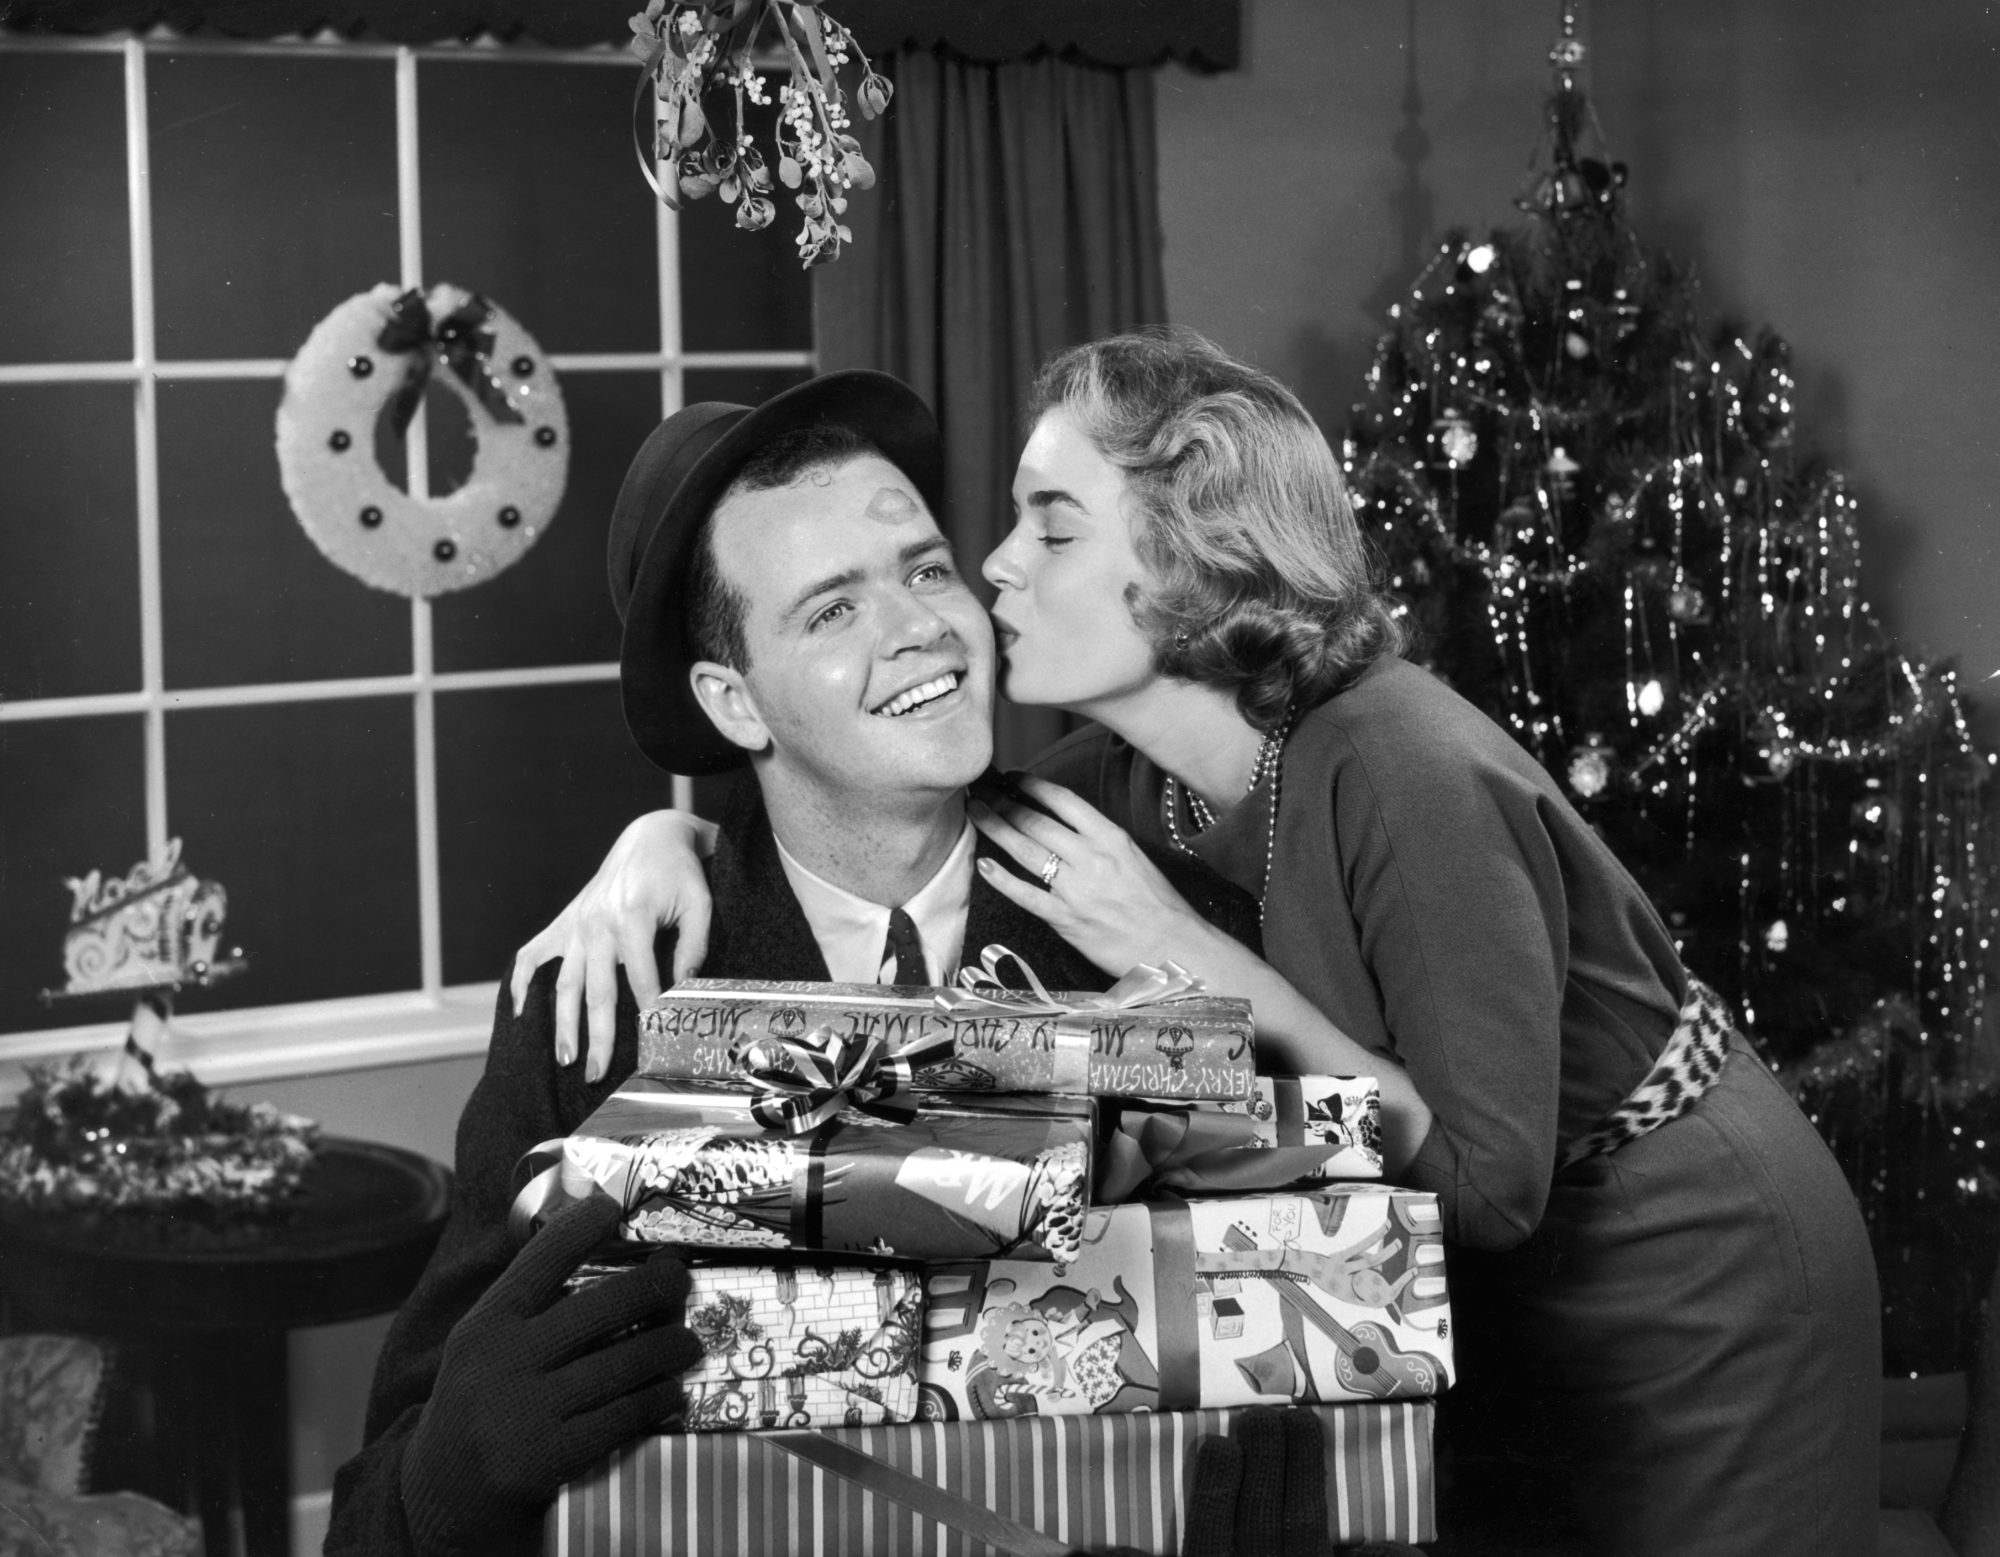 Woman Kissing Man Under the Mistletoe